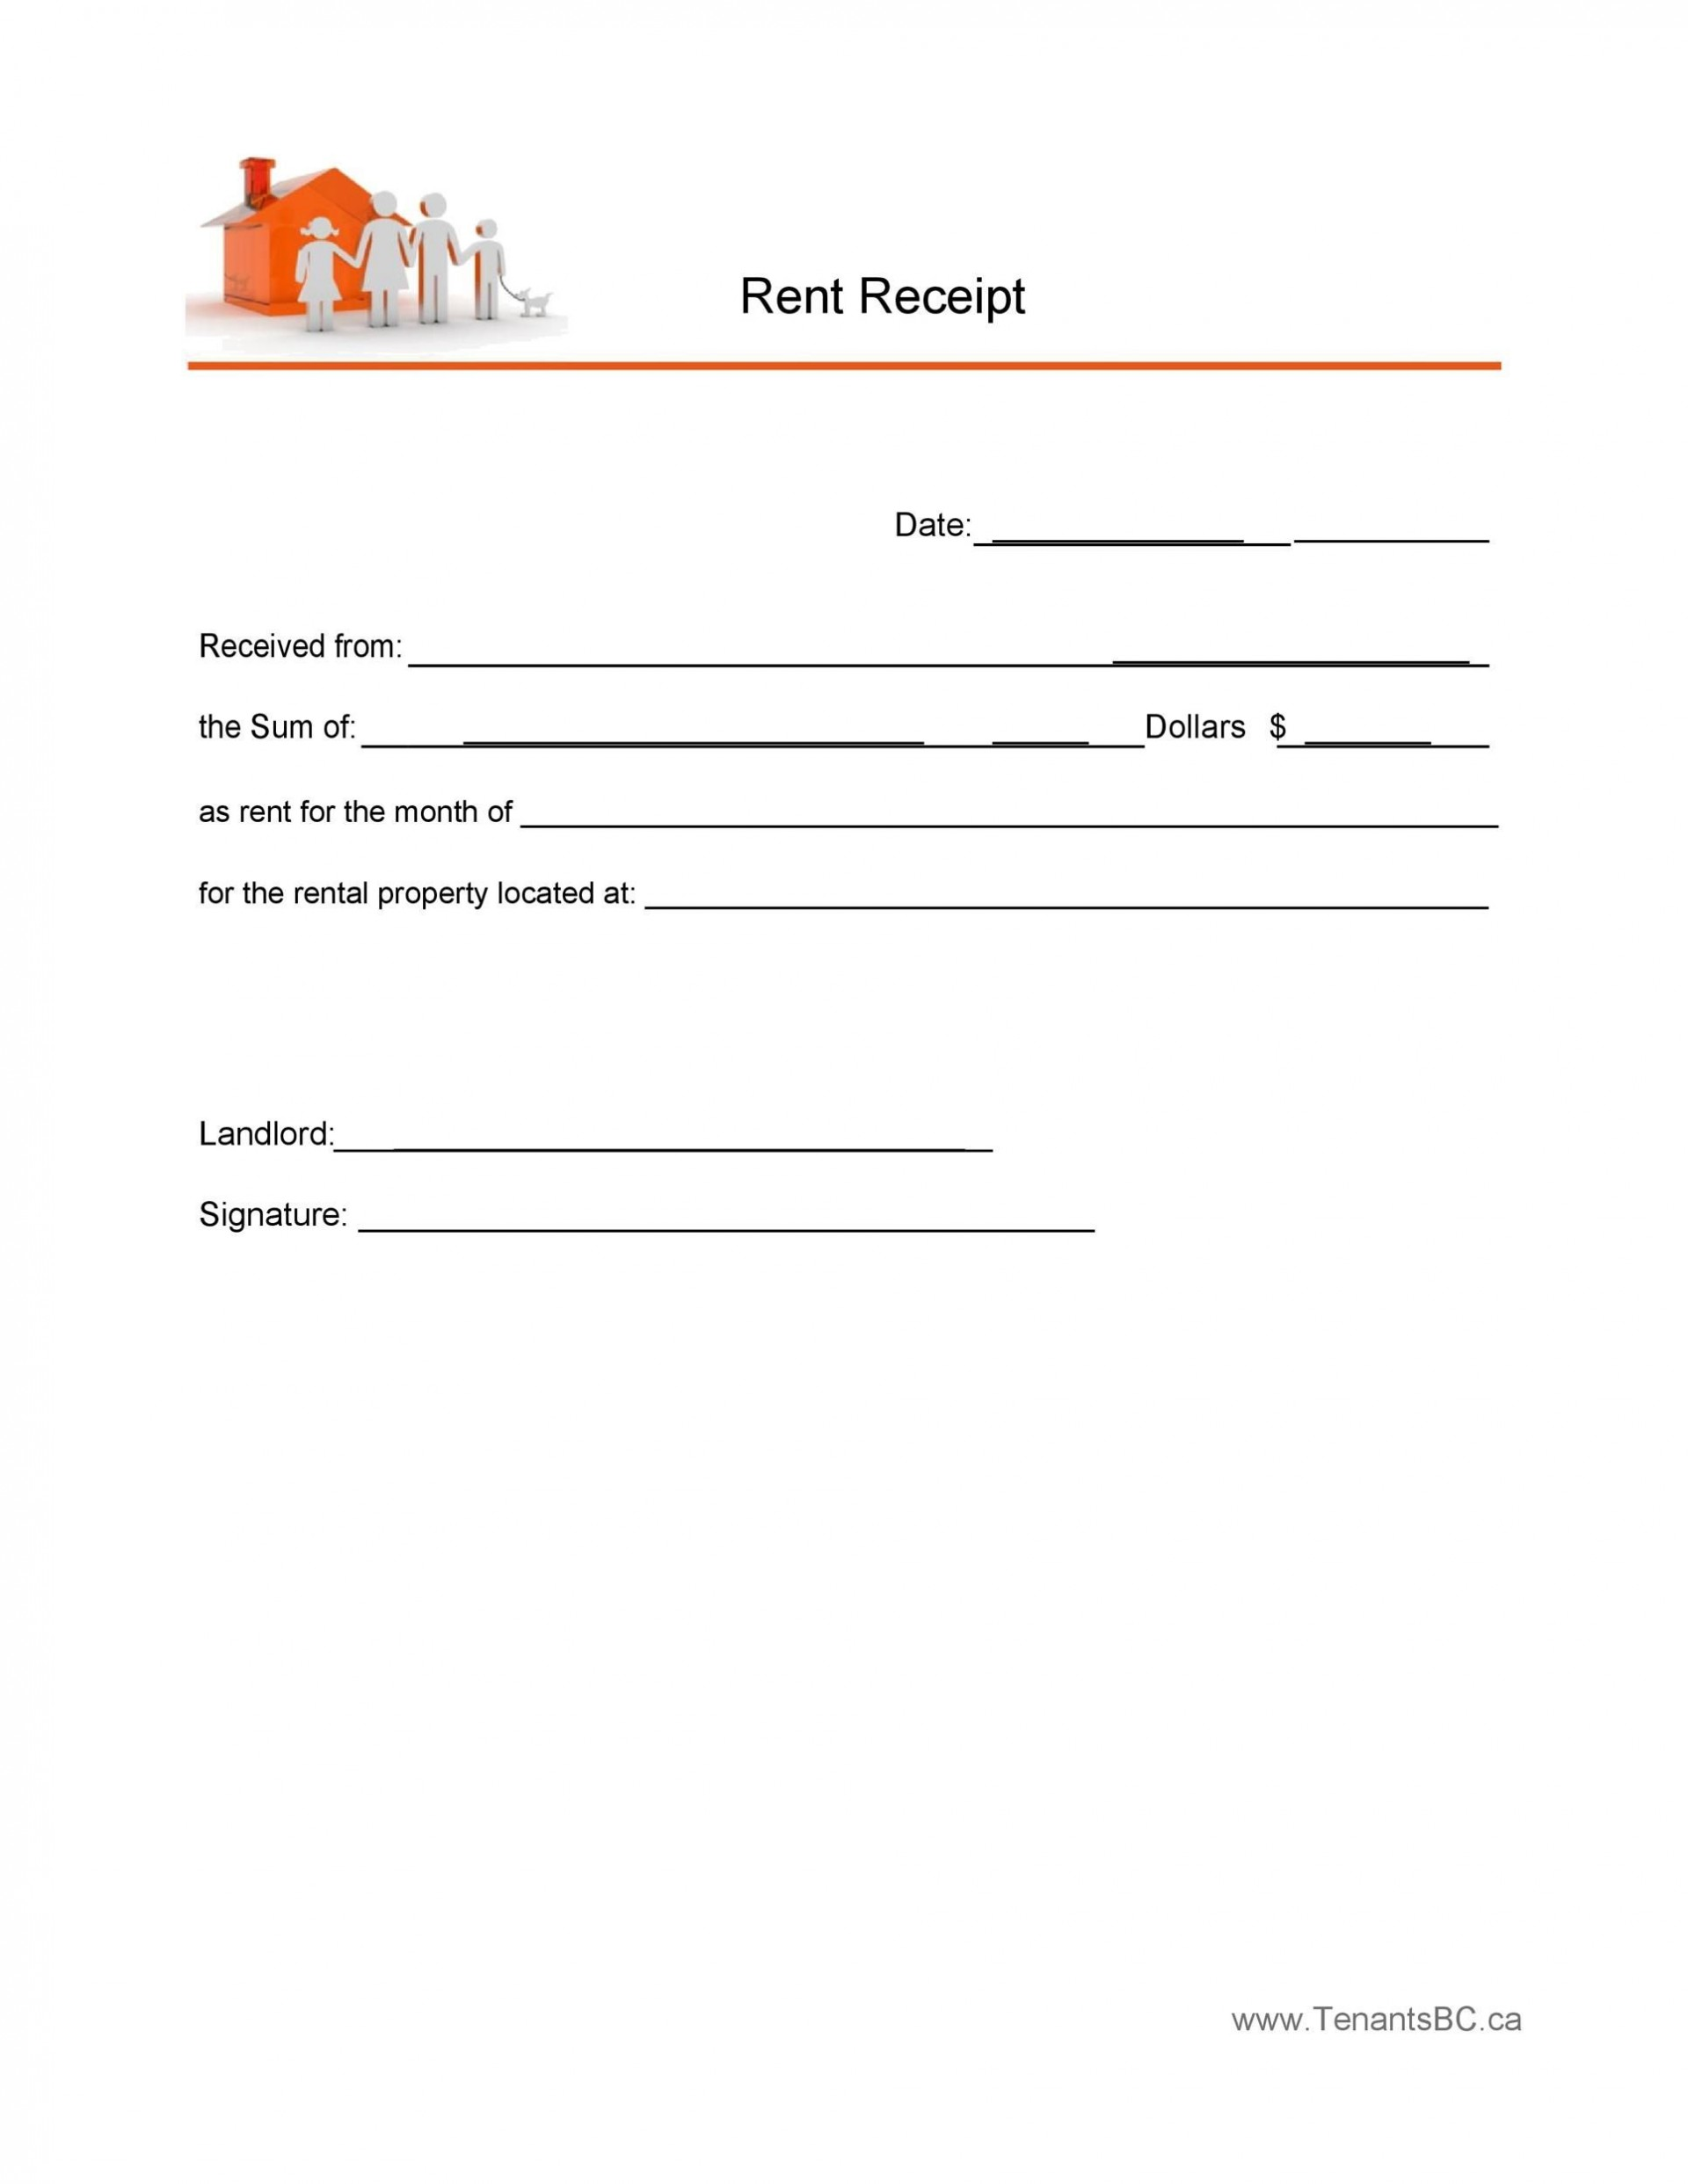 010 Outstanding Rent Receipt Template Docx High Resolution  Format India Car Rental Bill Doc1920